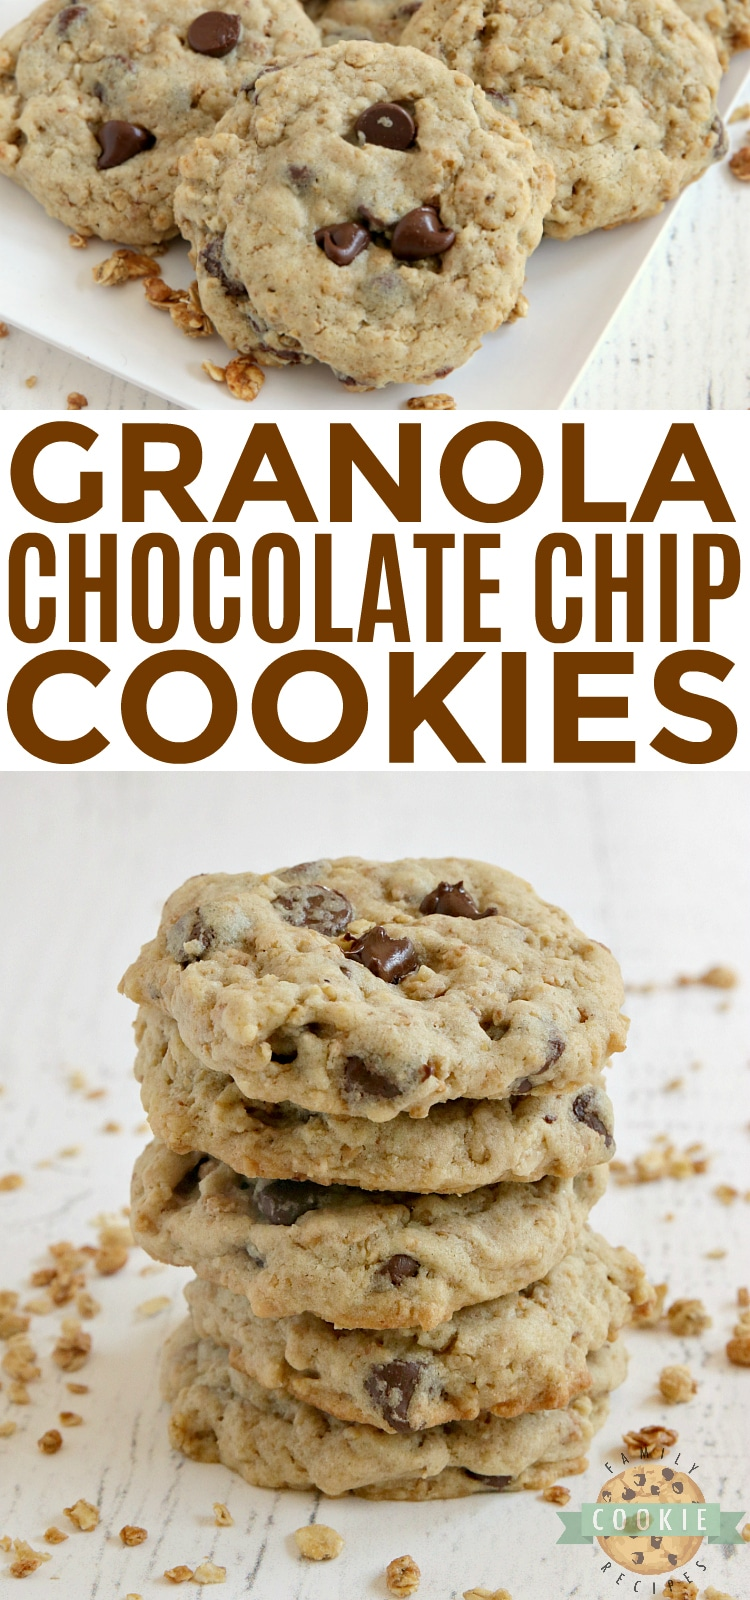 Granola Chocolate Chip Cookies are soft, chewy, full of protein and crunchy granola. With 5 grams of protein per cookie and a little bit of crunch, these have become my new favorite cookie! via @buttergirls